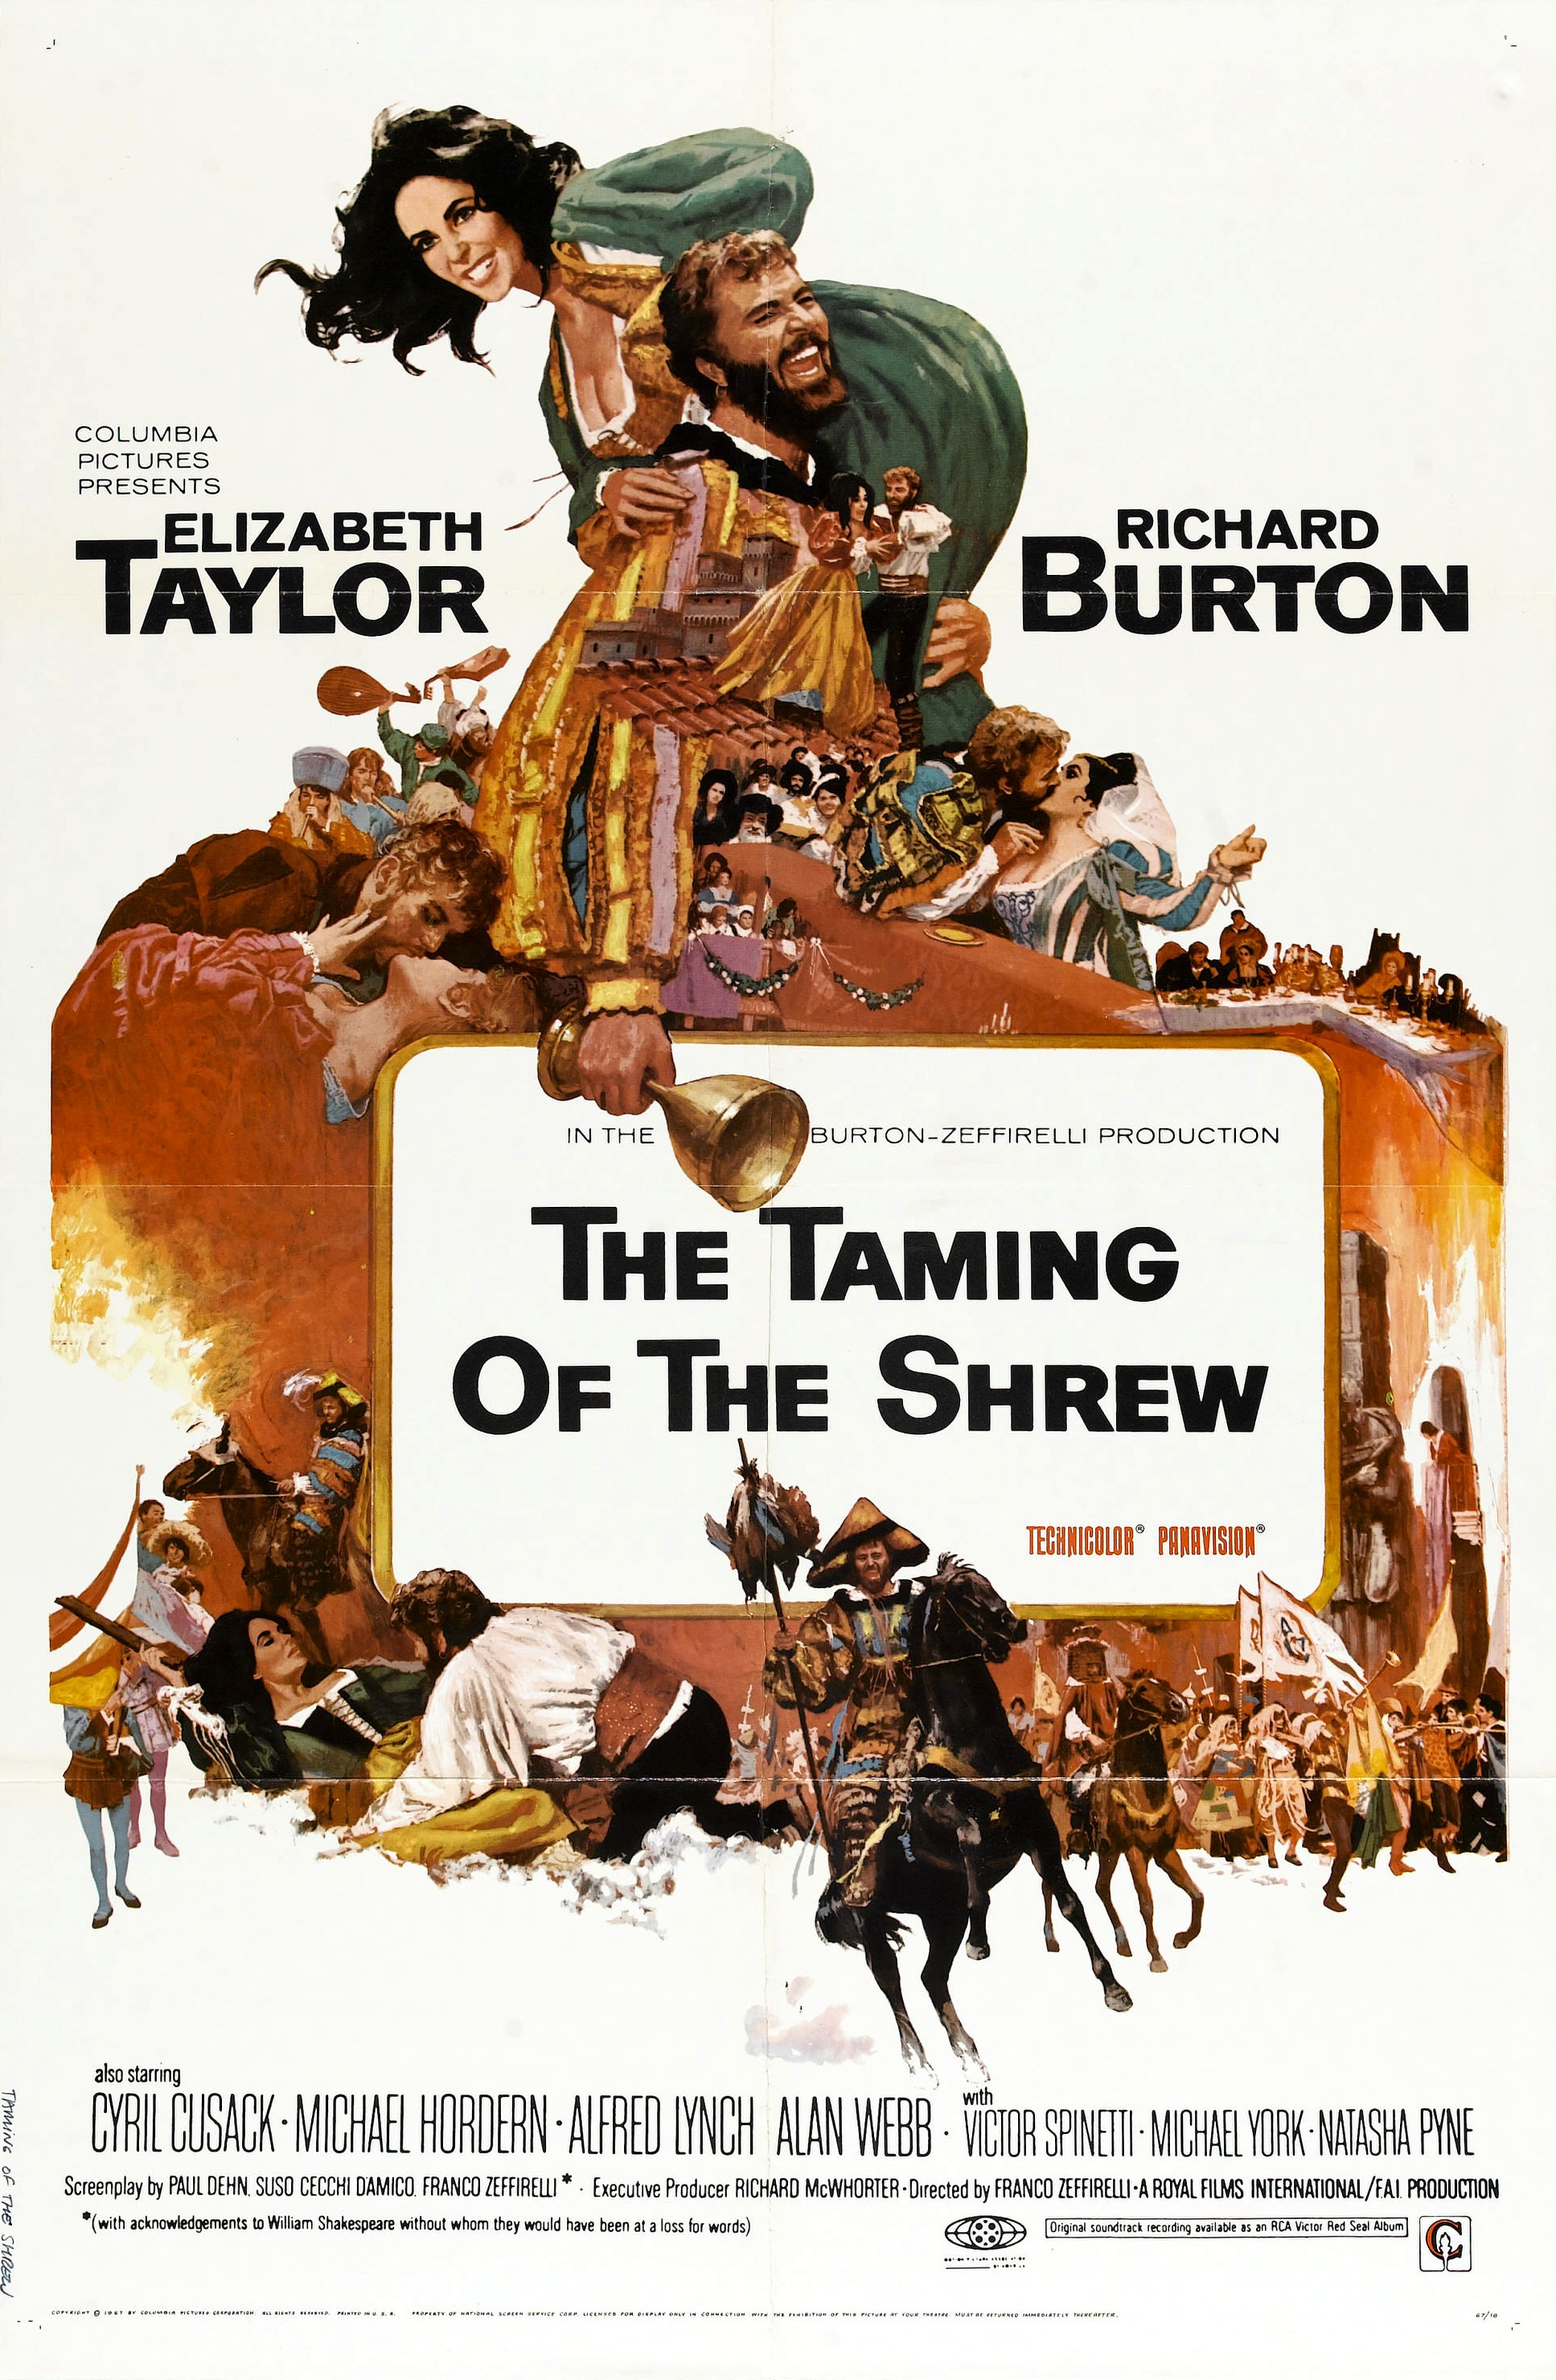 The Taming of the Shrew (1967) Technical Specifications